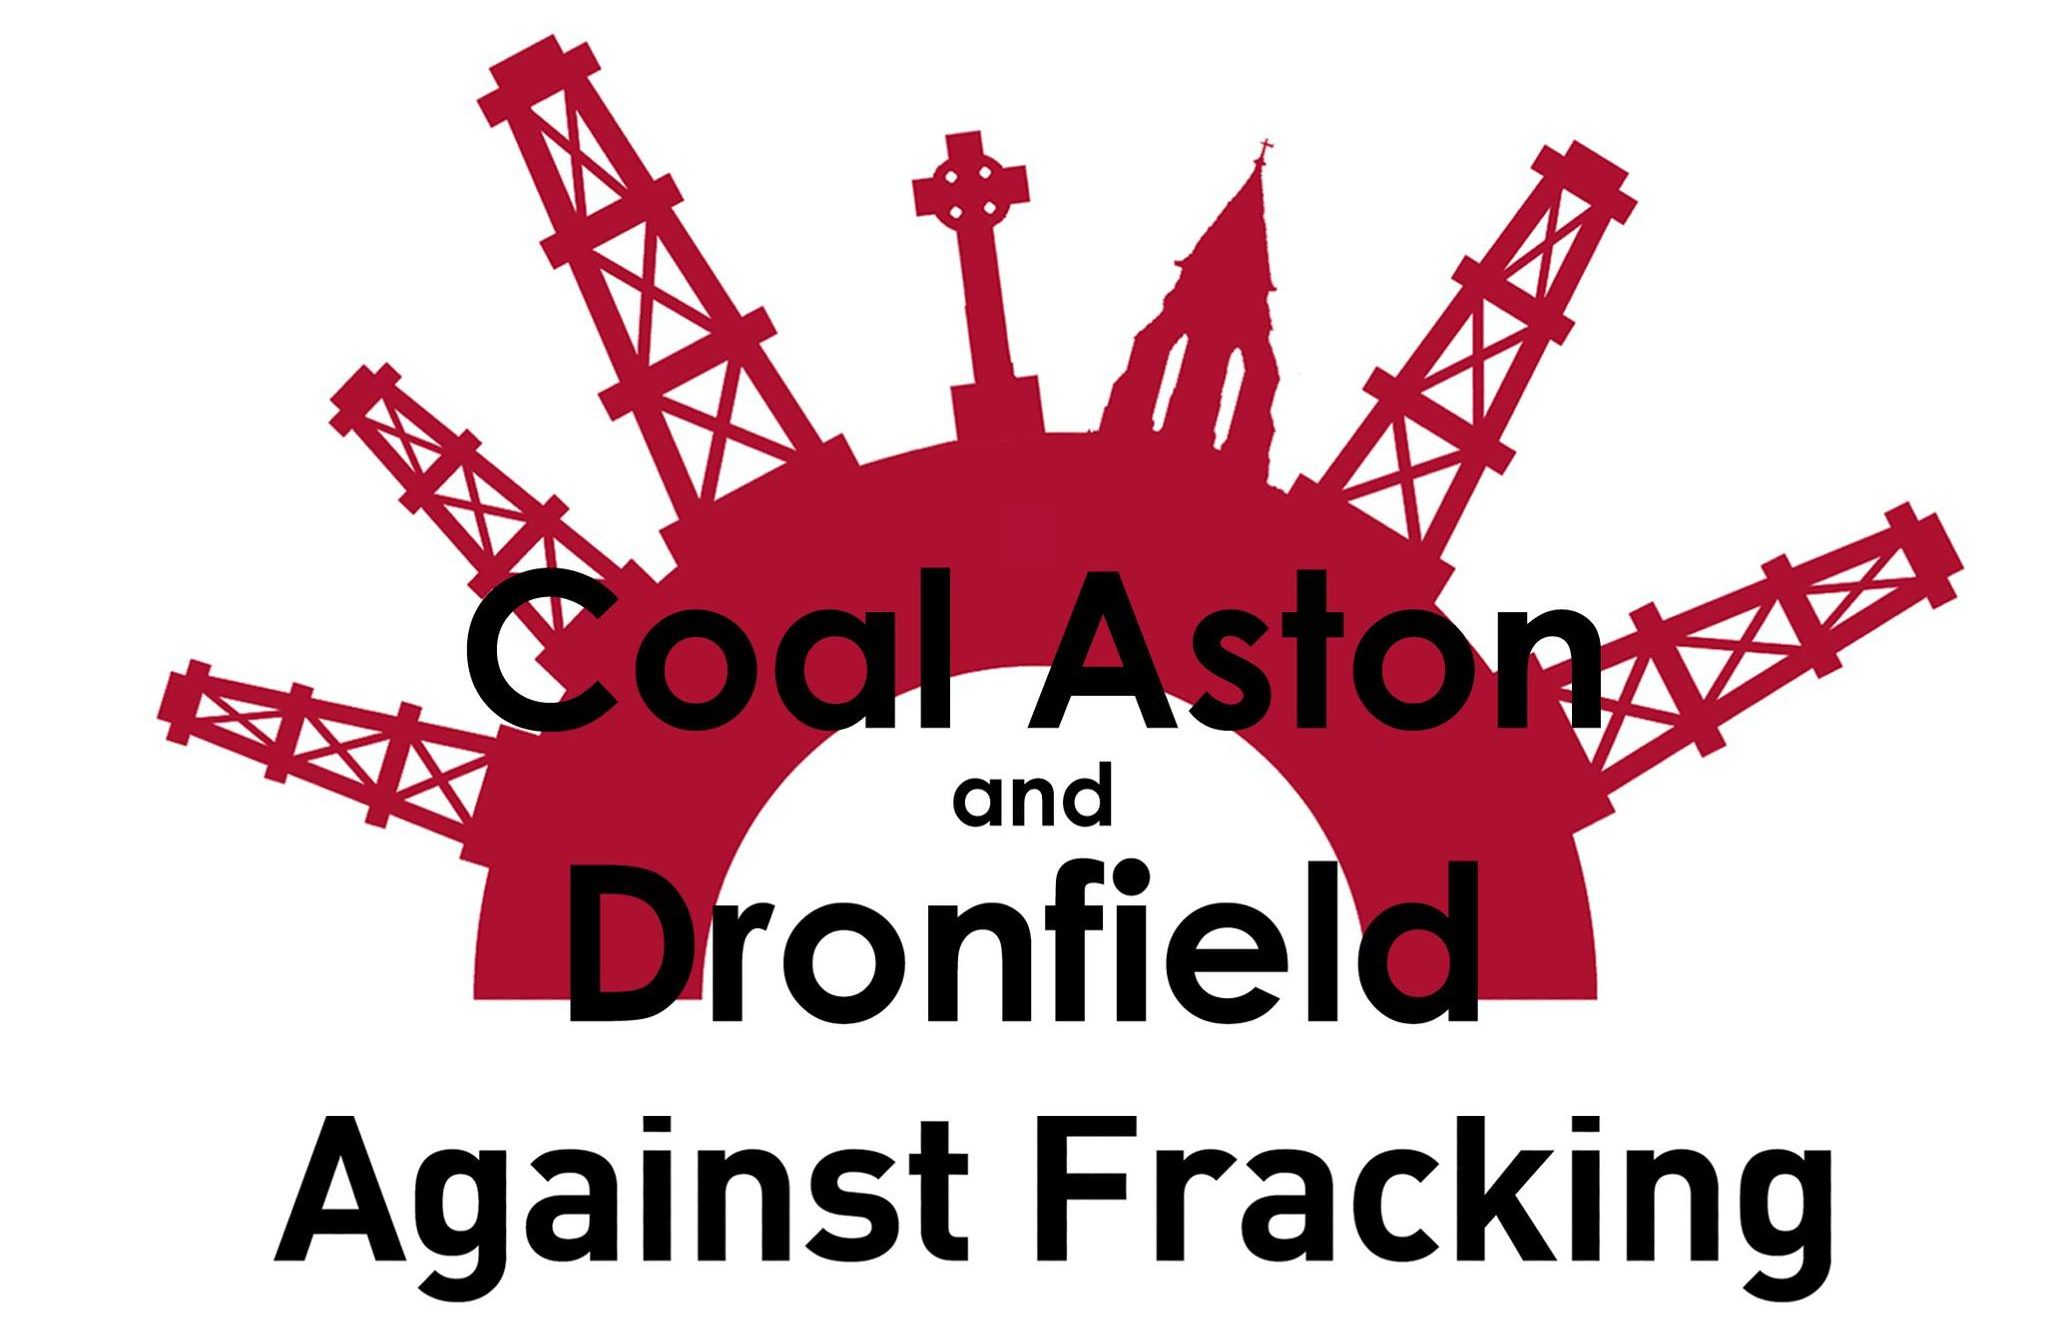 Coal Aston and Dronfield Against Fracking